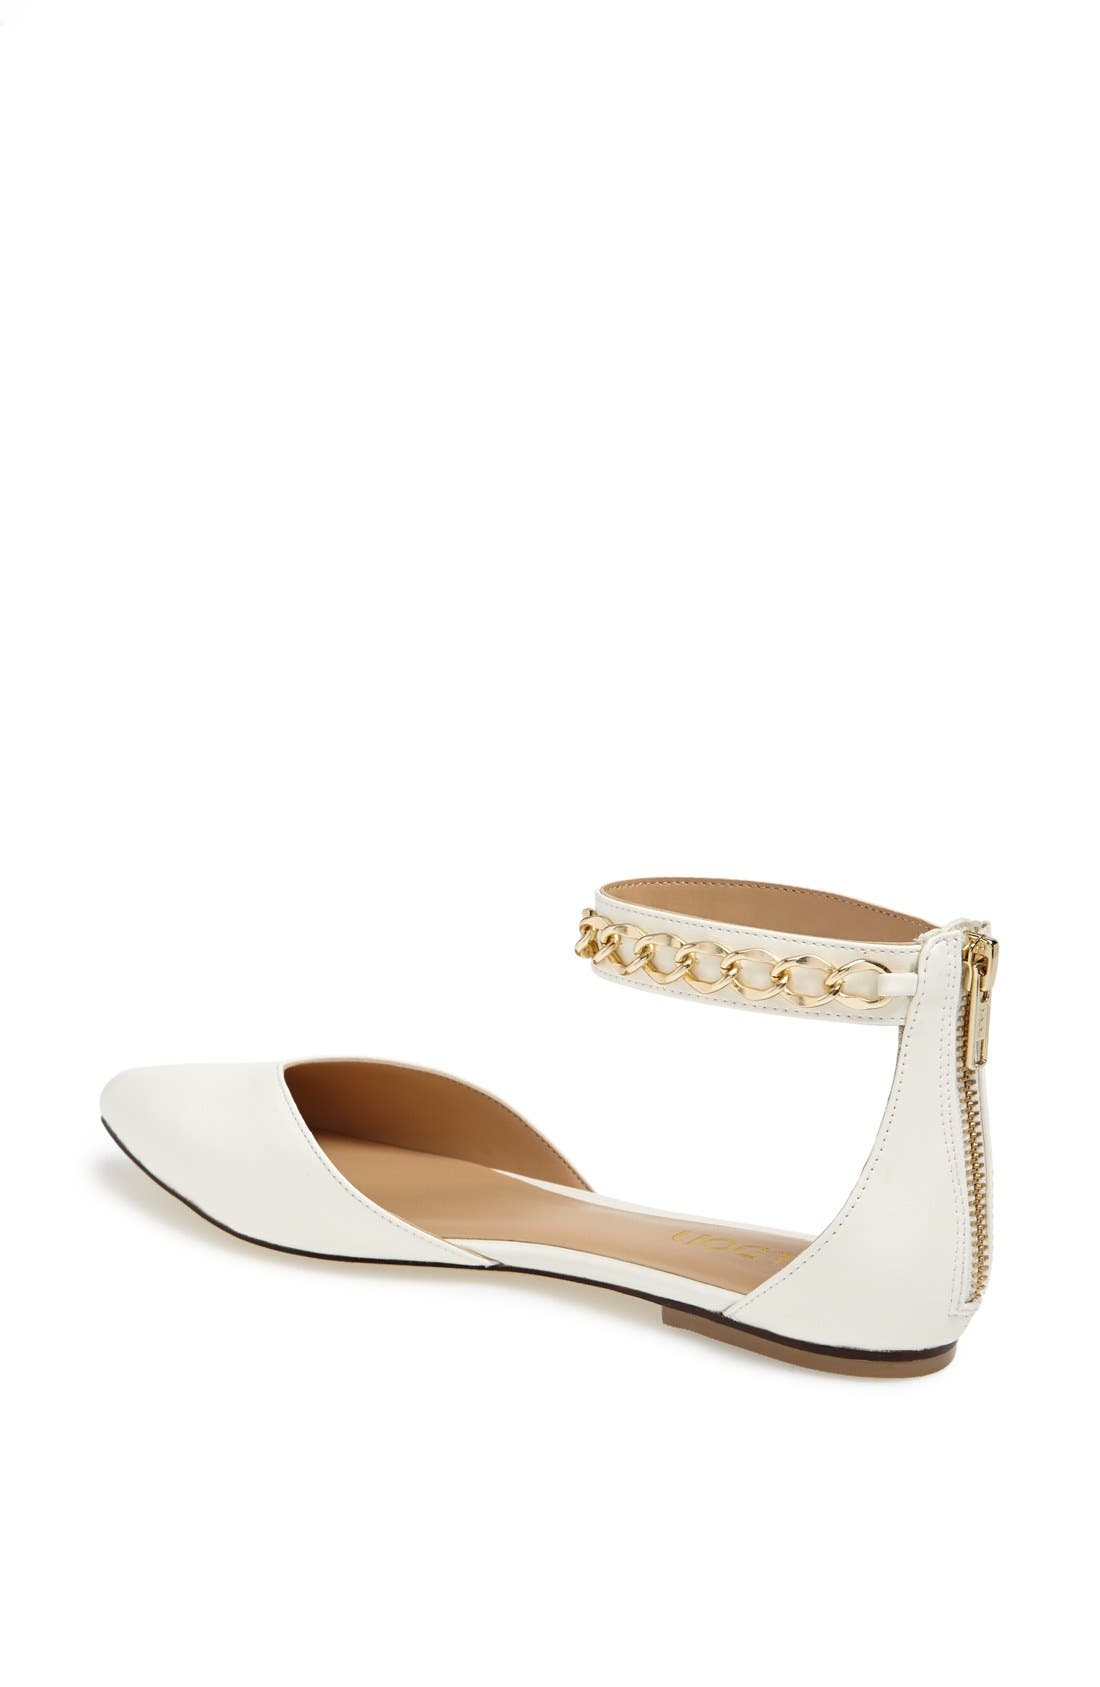 'Anya' Ankle Strap D'Orsay Flat,                             Alternate thumbnail 14, color,